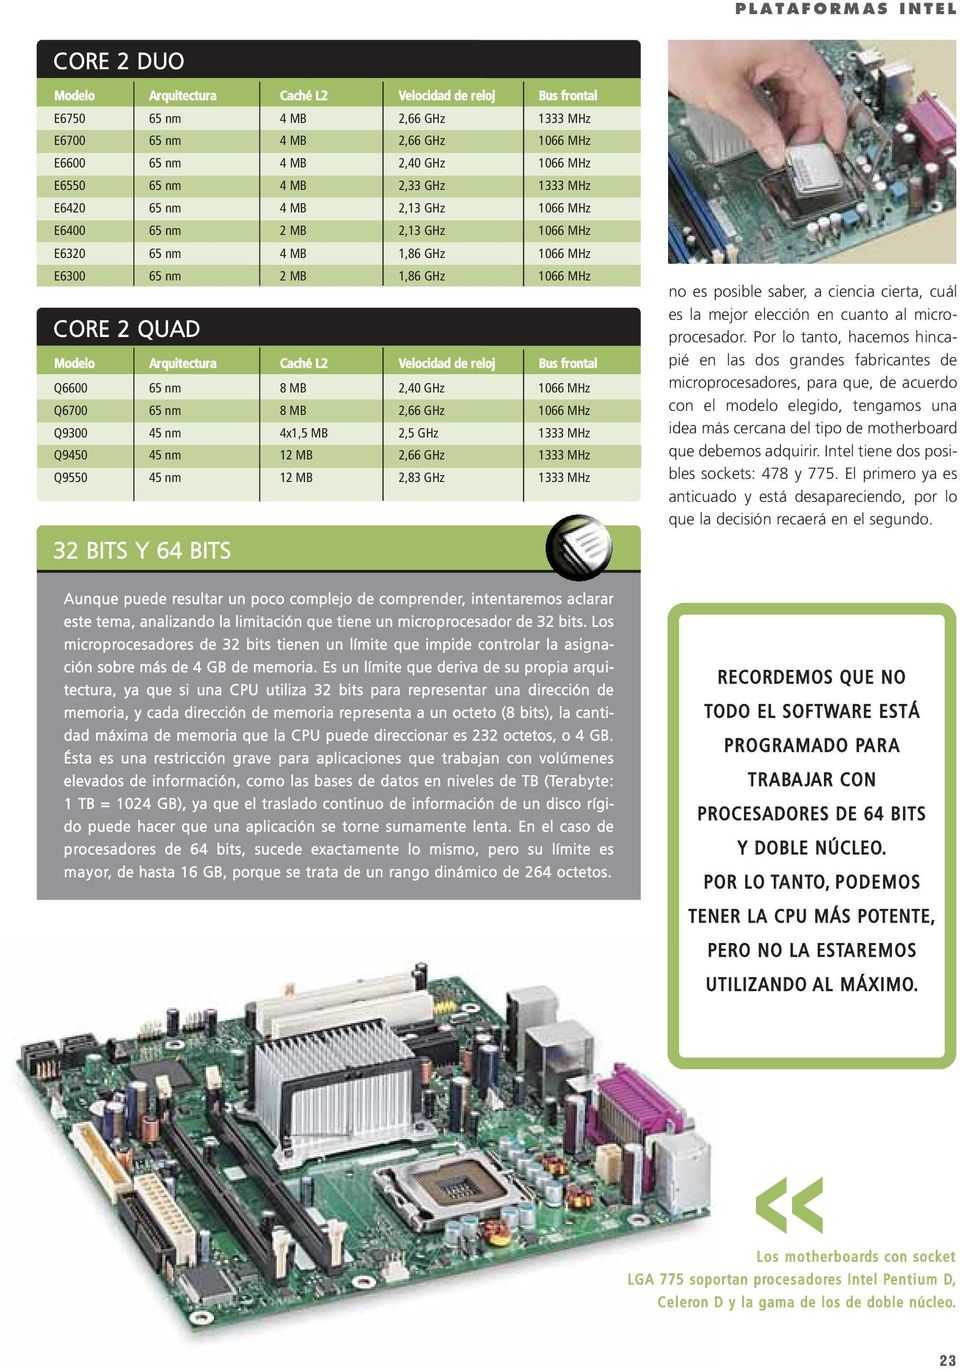 Arquitectura Caché L2 Velocidad de reloj Bus frontal Q6600 65 nm 8 MB 2,40 GHz 1066 MHz Q6700 65 nm 8 MB 2,66 GHz 1066 MHz Q9300 45 nm 4x1,5 MB 2,5 GHz 1333 MHz Q9450 45 nm 12 MB 2,66 GHz 1333 MHz